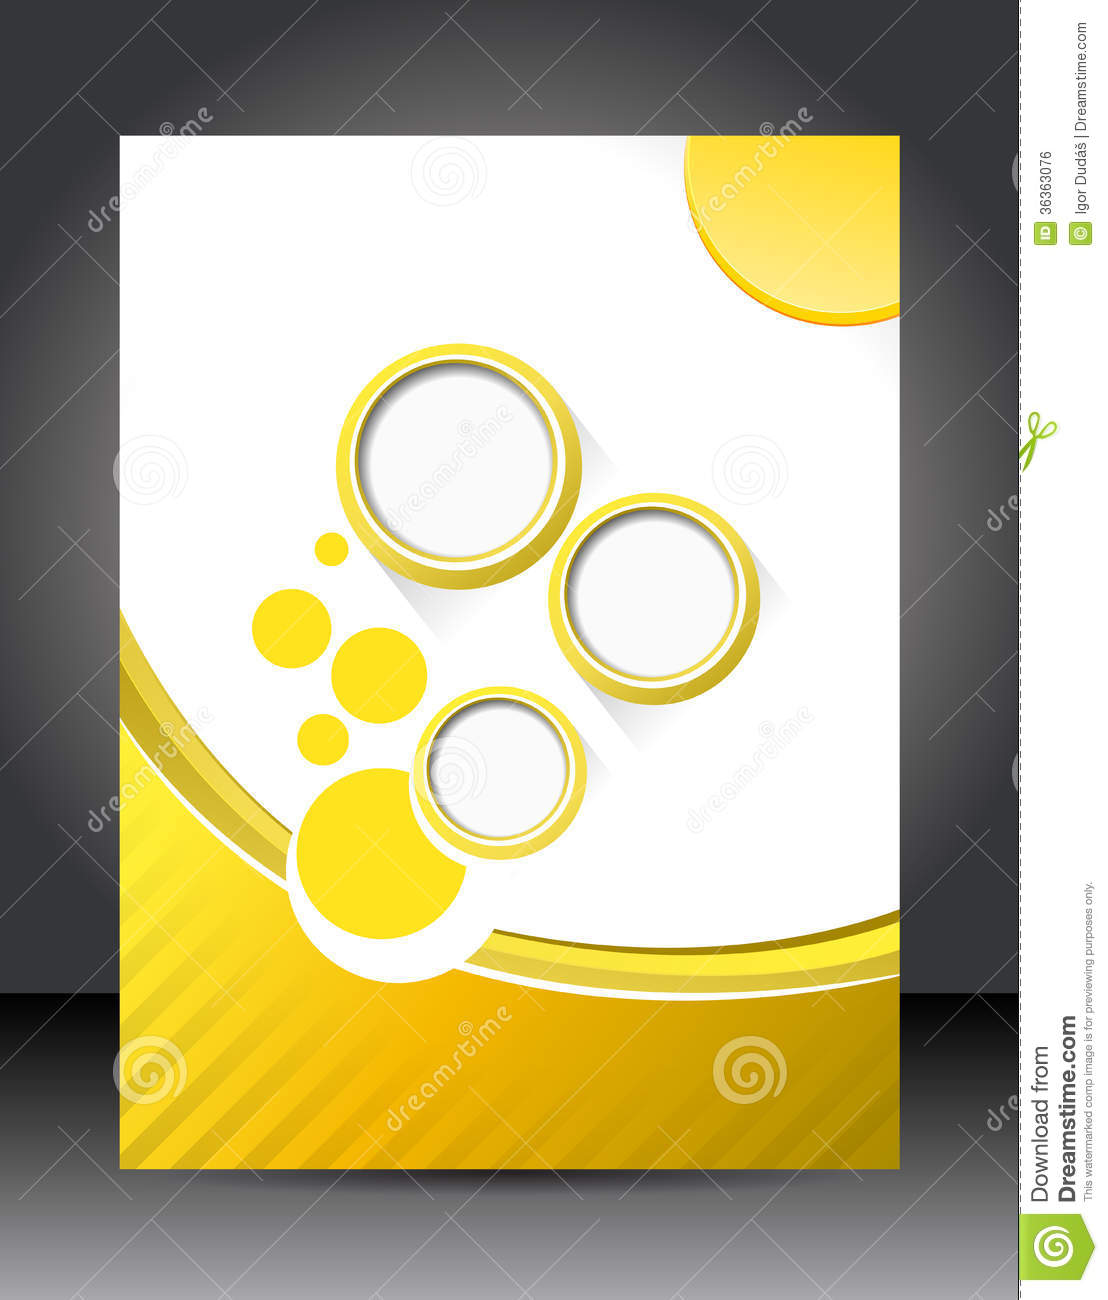 Poster design template - Free Poster Design Site Poster Design Layout Templates Template Free Design Layout Download